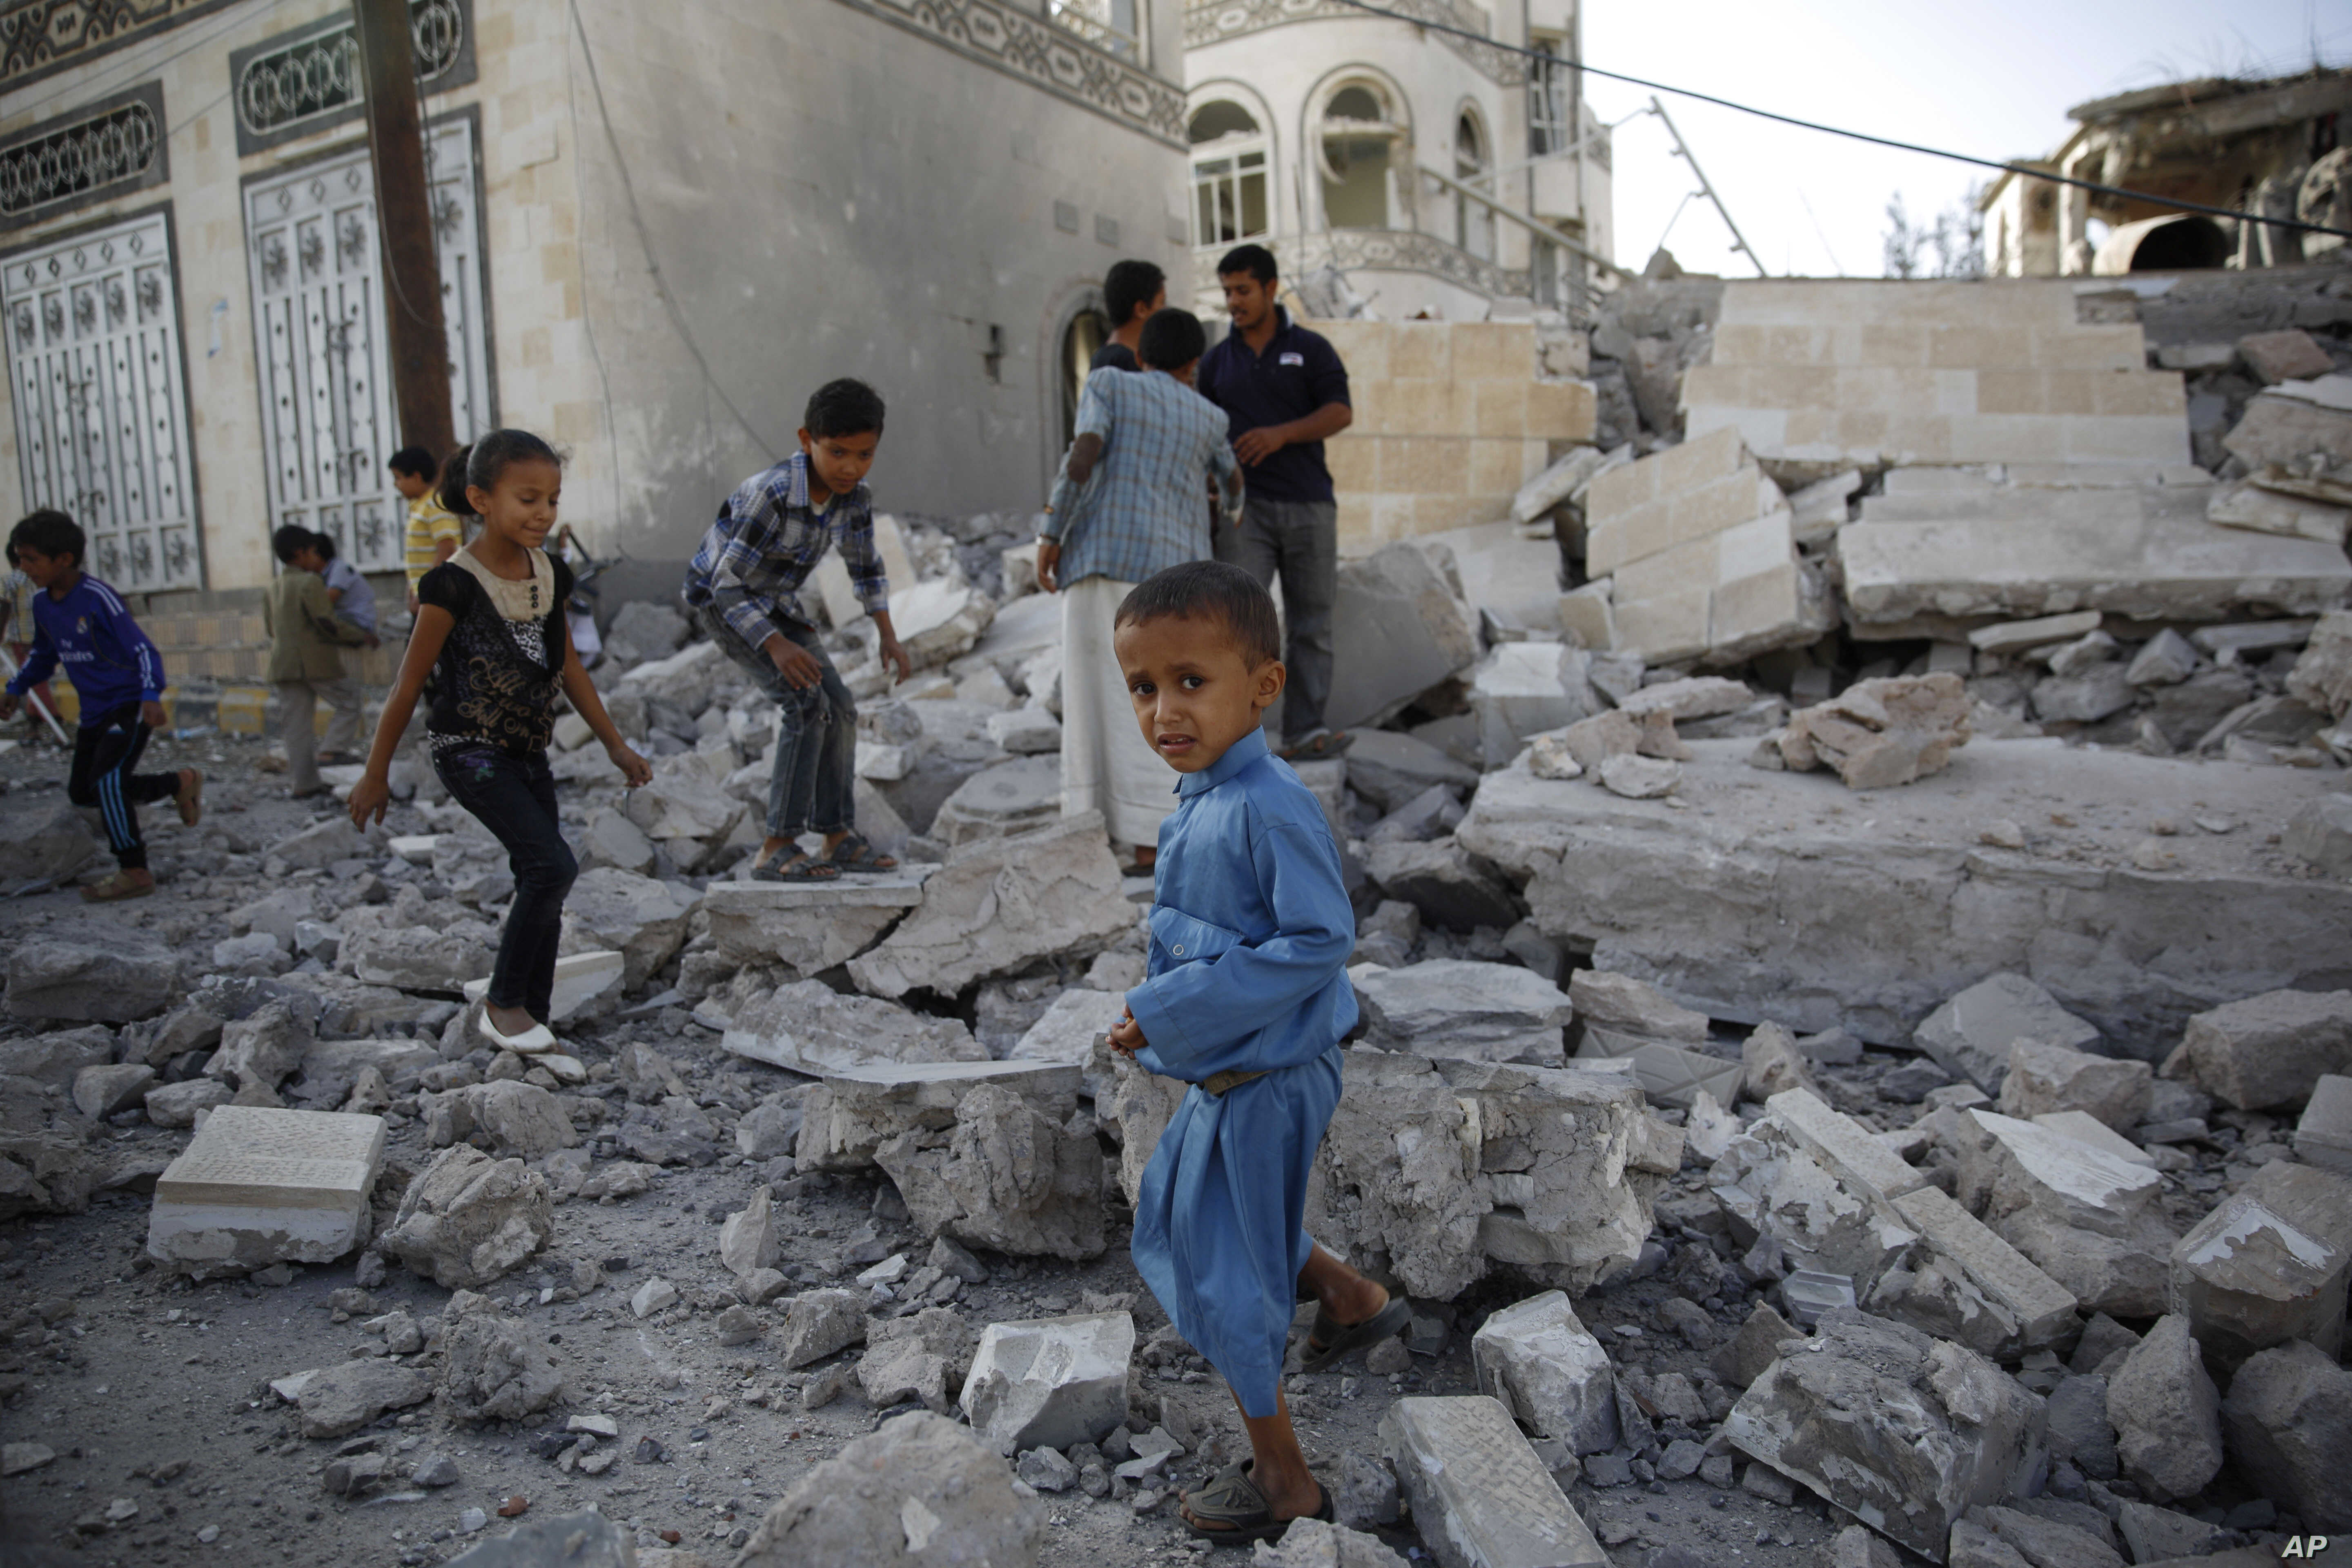 FILE - Children play amid the rubble of a house destroyed by a Saudi-led airstrike in Sana'a, Yemen, Sept. 8, 2015. A cease-fire declared two months ago has not slowed the violence the Yemen, local activists say.